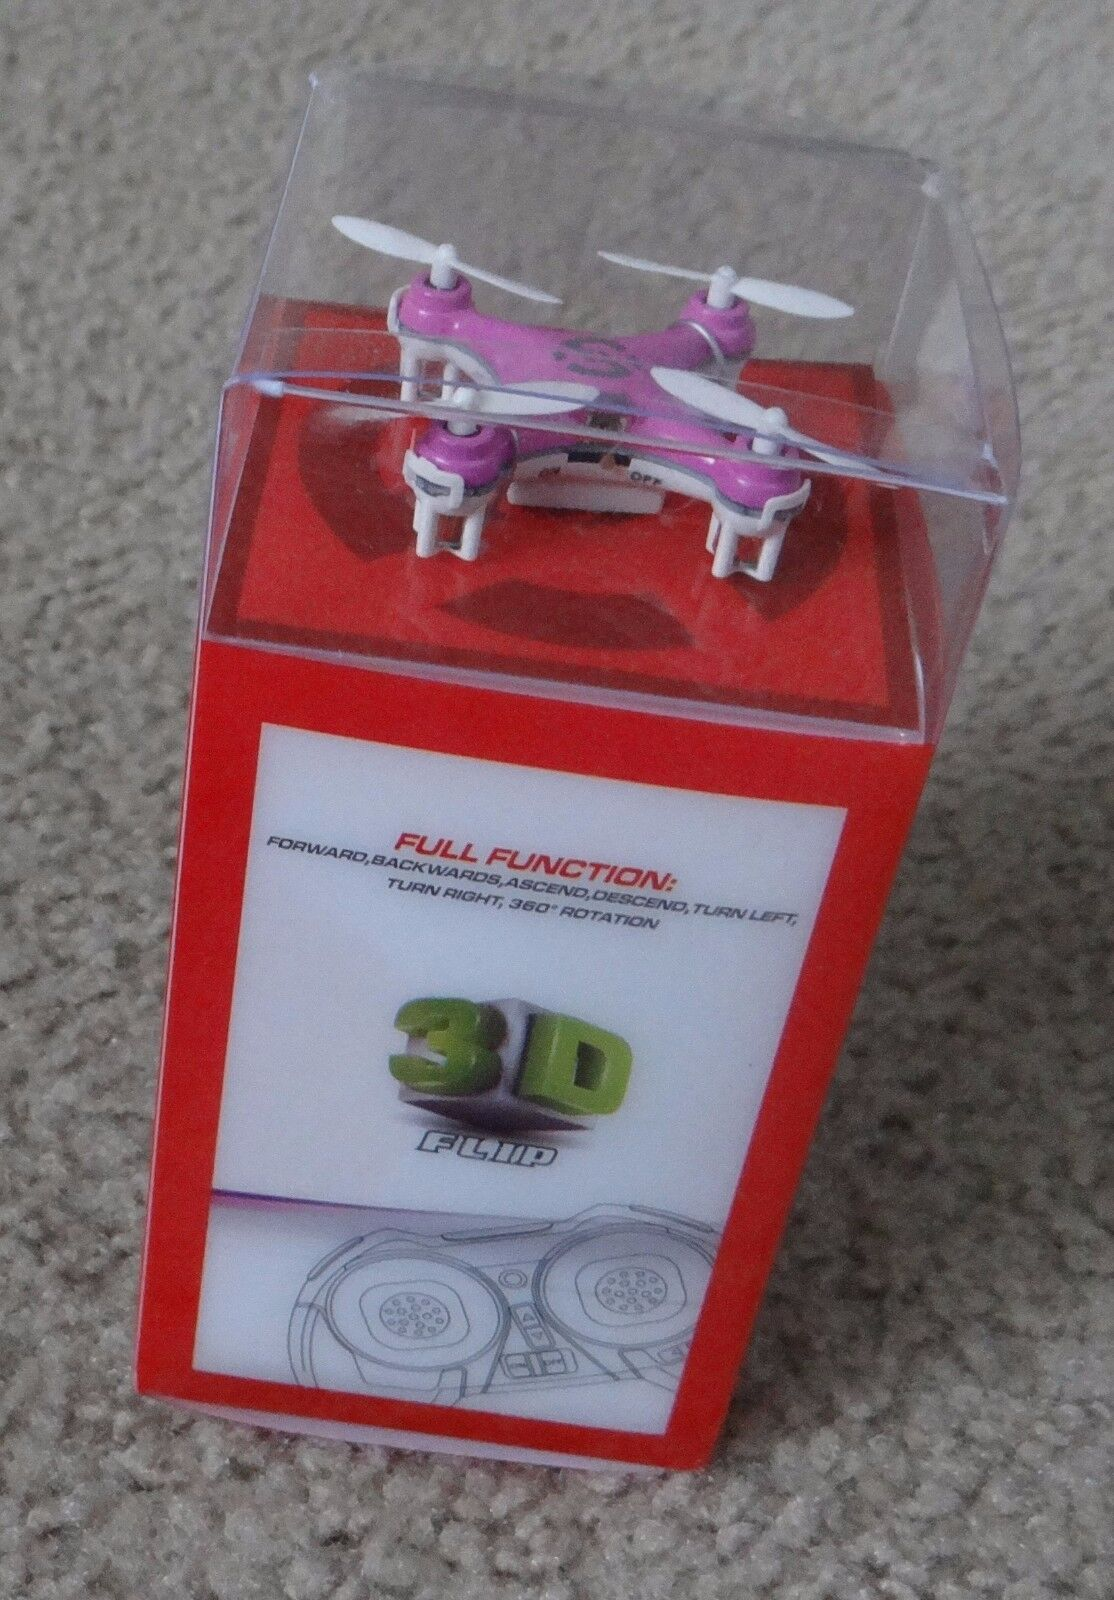 Cheerson CX-10 4CH 2.4GHz 6 LED Rechargeable Mini Nano RC UFO Quadcopter - Pink